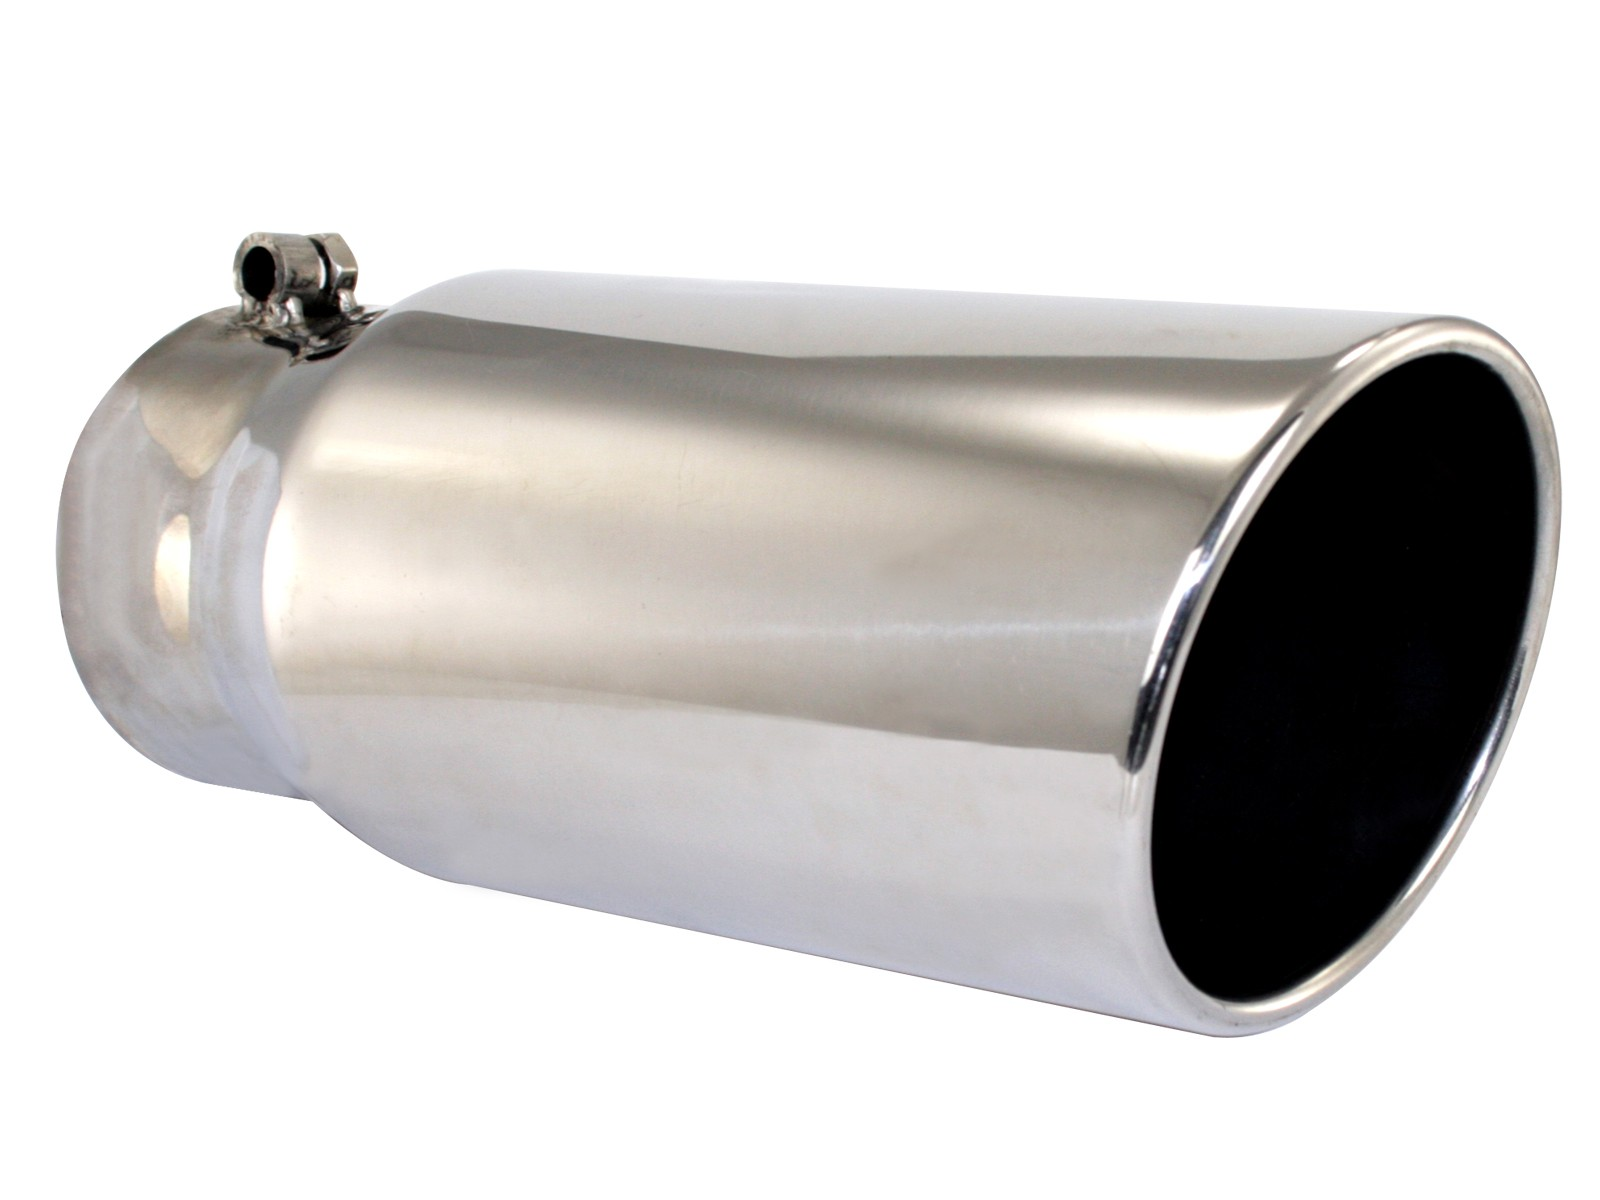 mach force xp 4 304 stainless steel exhaust tip